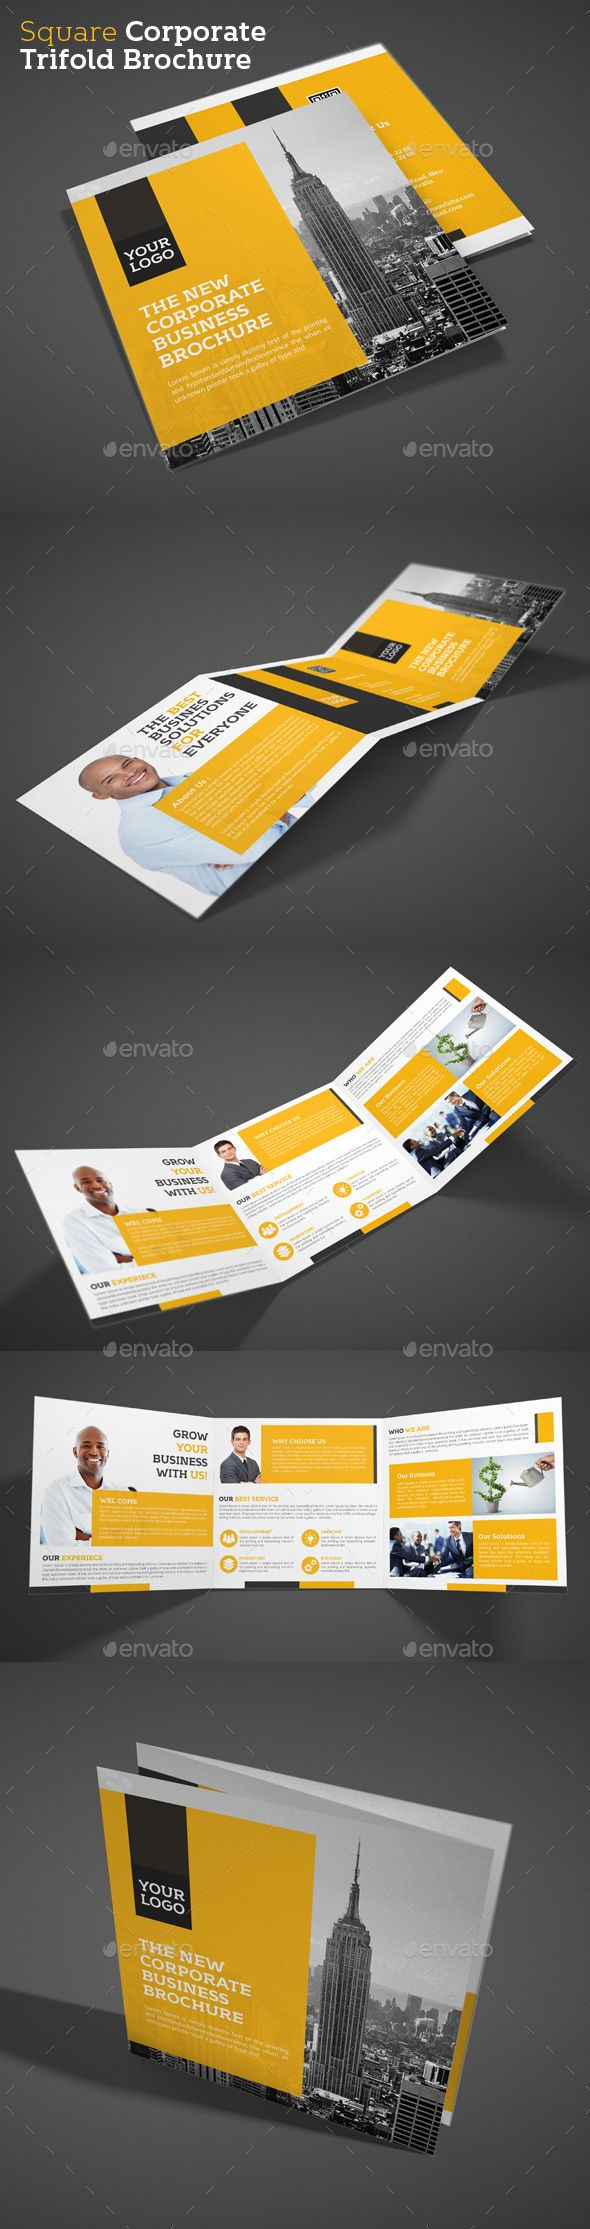 Square Corporate Trifold Brochure